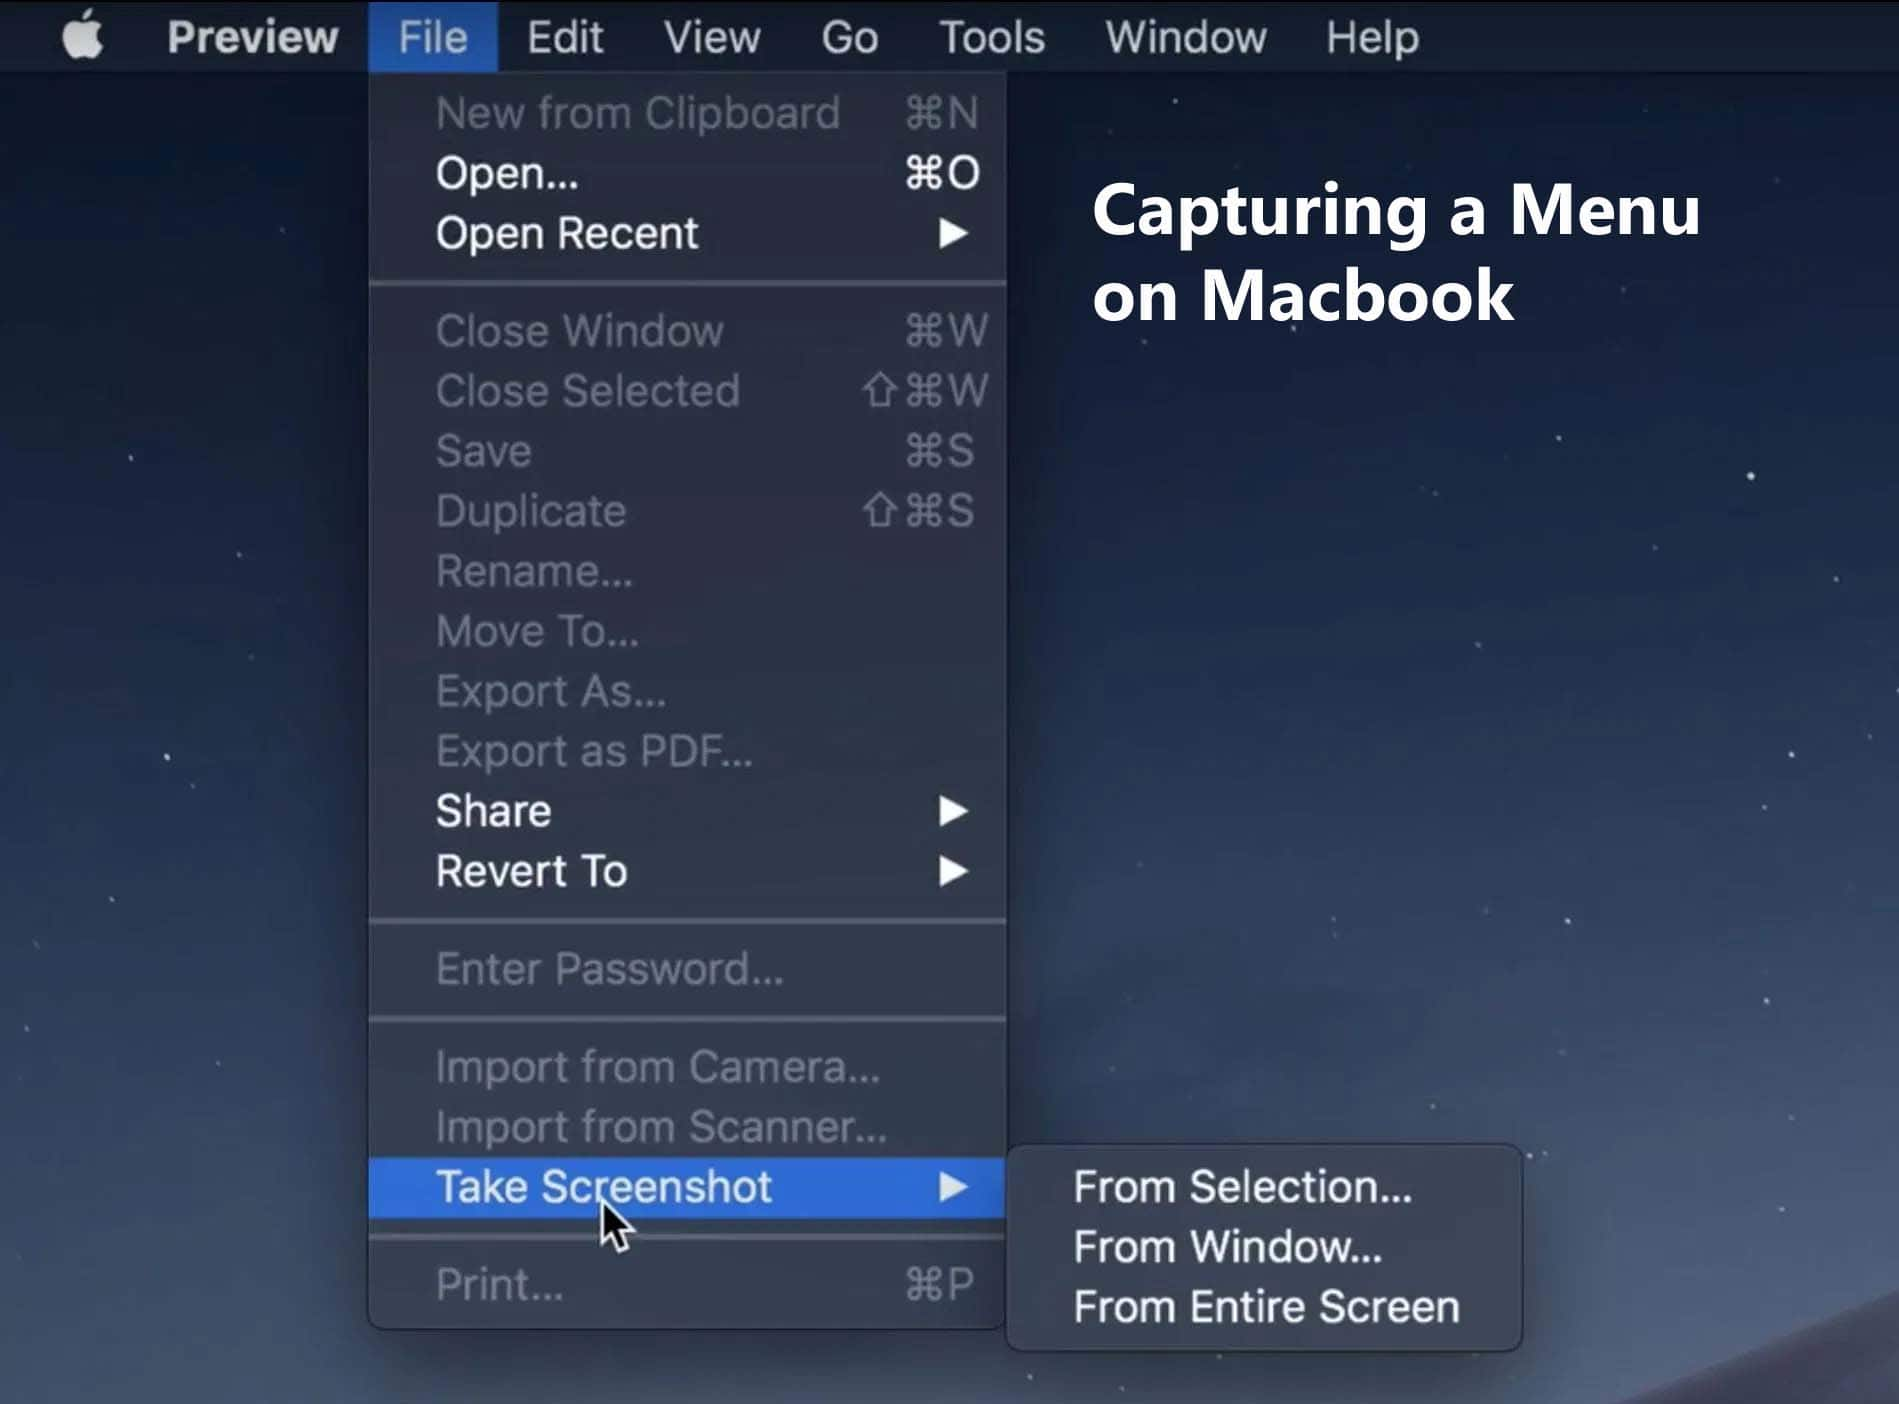 how to capture a menu on mac - starters guide